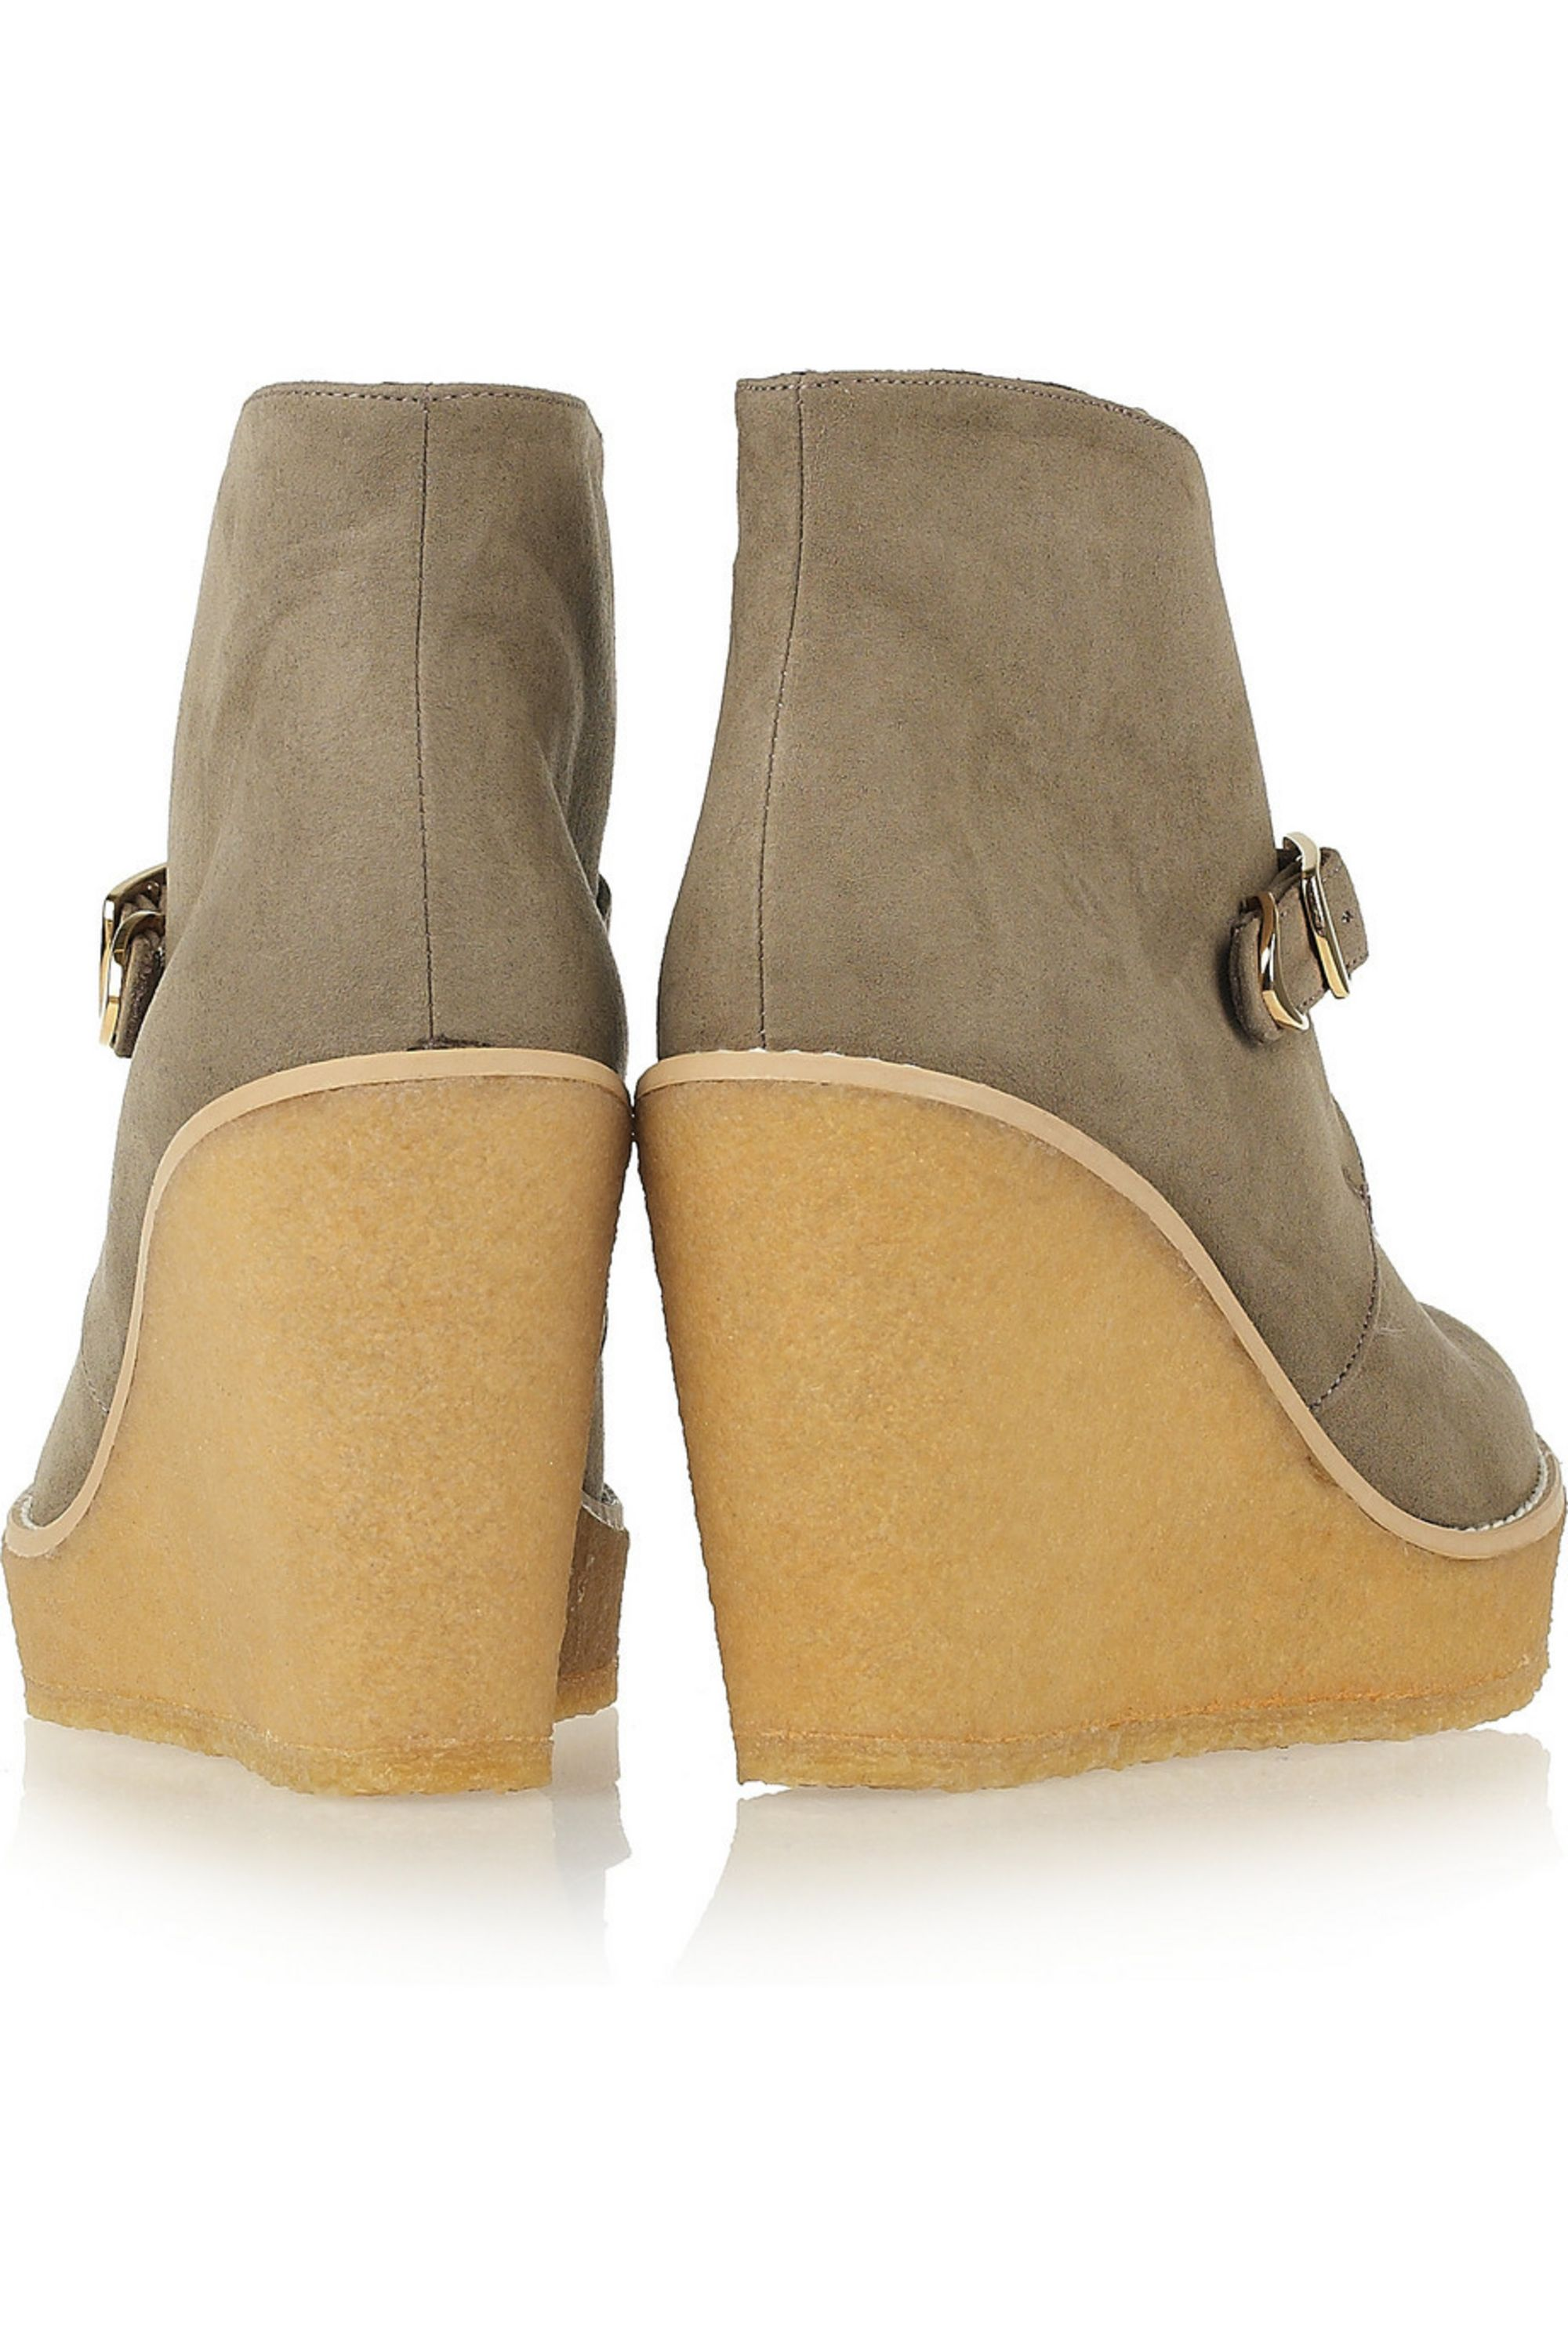 Stella McCartney Faux suede wedge ankle boots